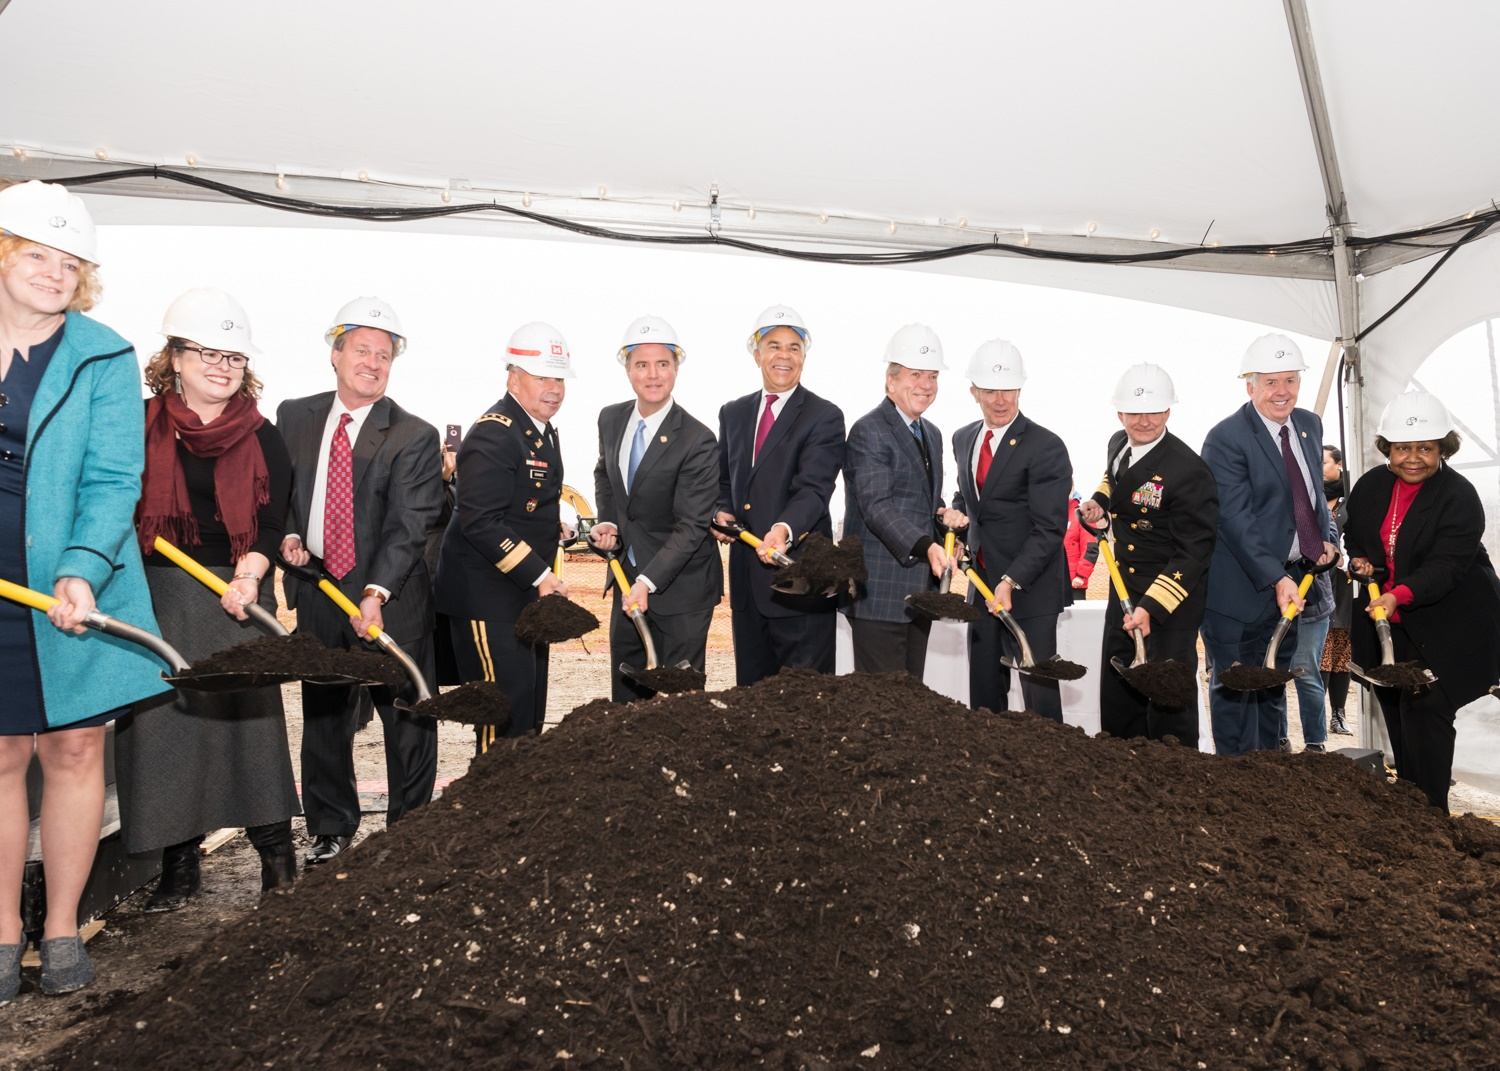 Vision for St. Louis Geospatial Intelligence Hub Advanced with NGA Groundbreaking - GISuser.com